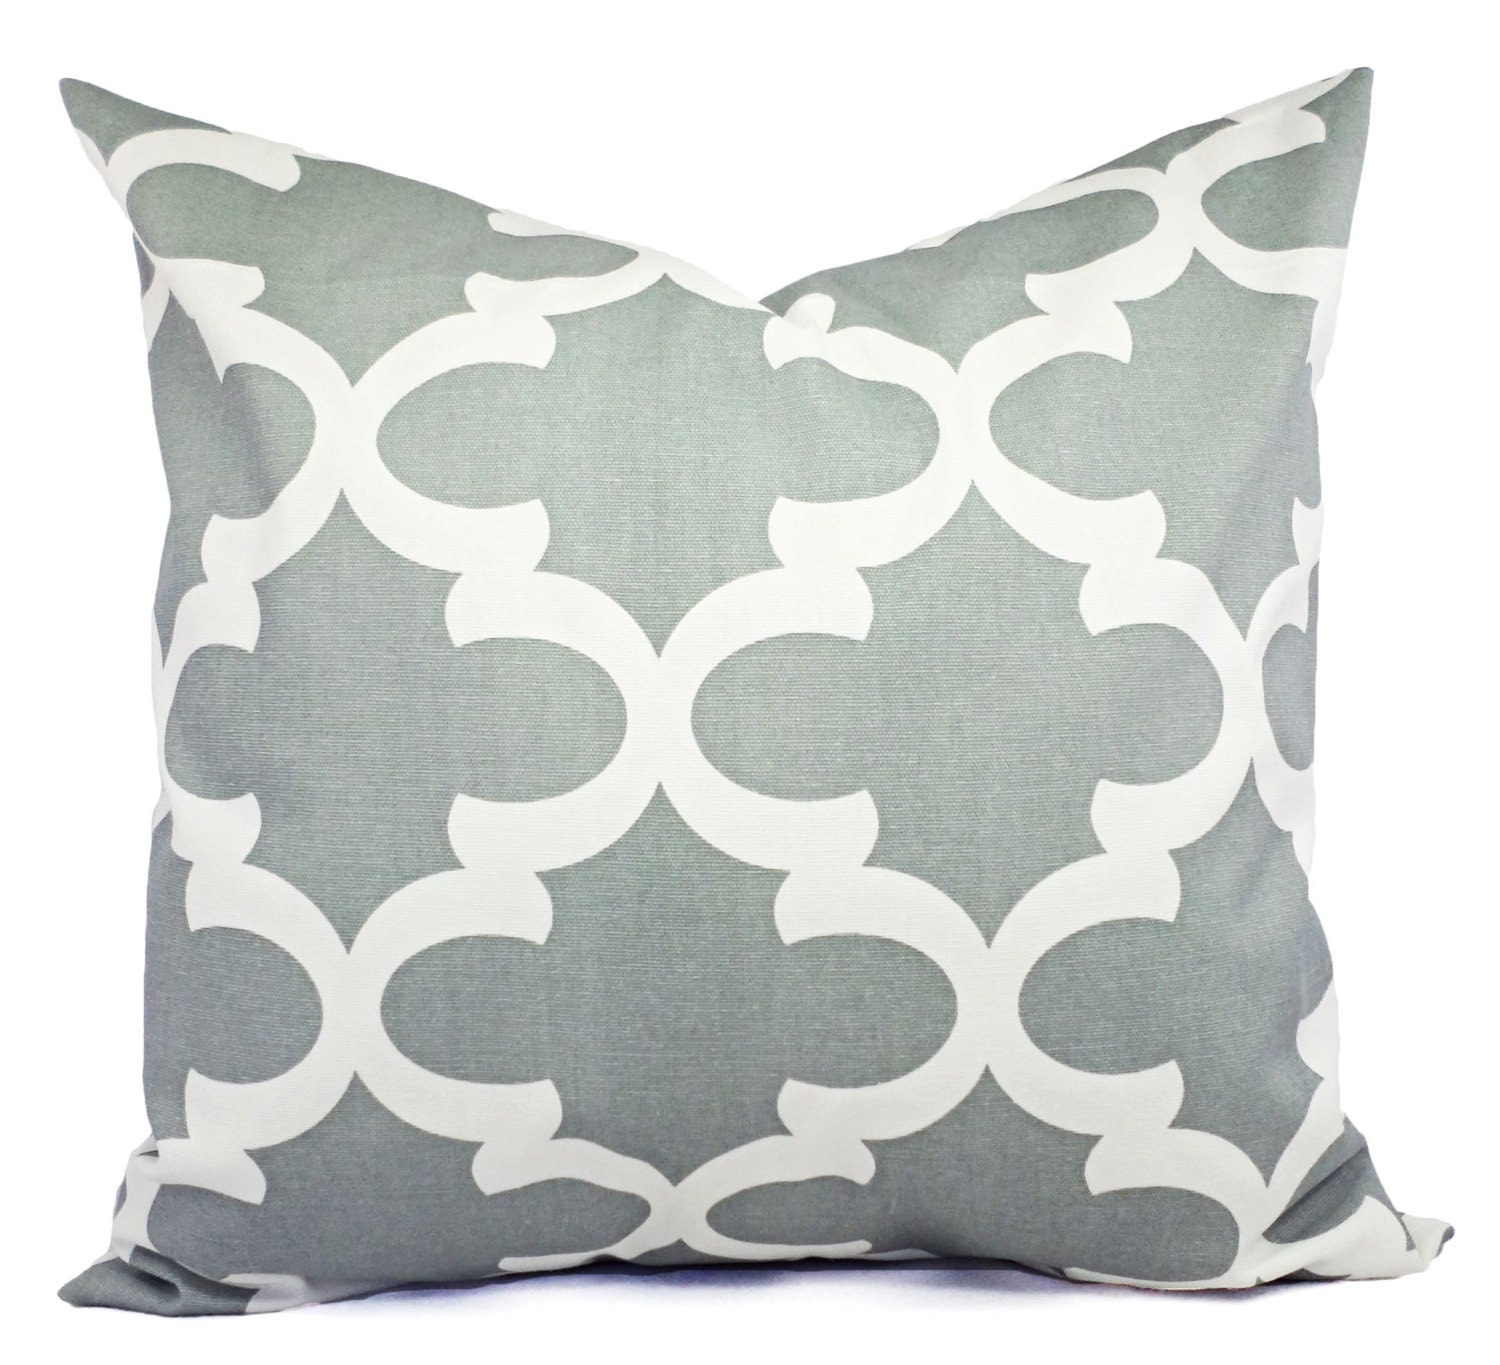 throw pillow covers cool grey and white grey decorative. Black Bedroom Furniture Sets. Home Design Ideas